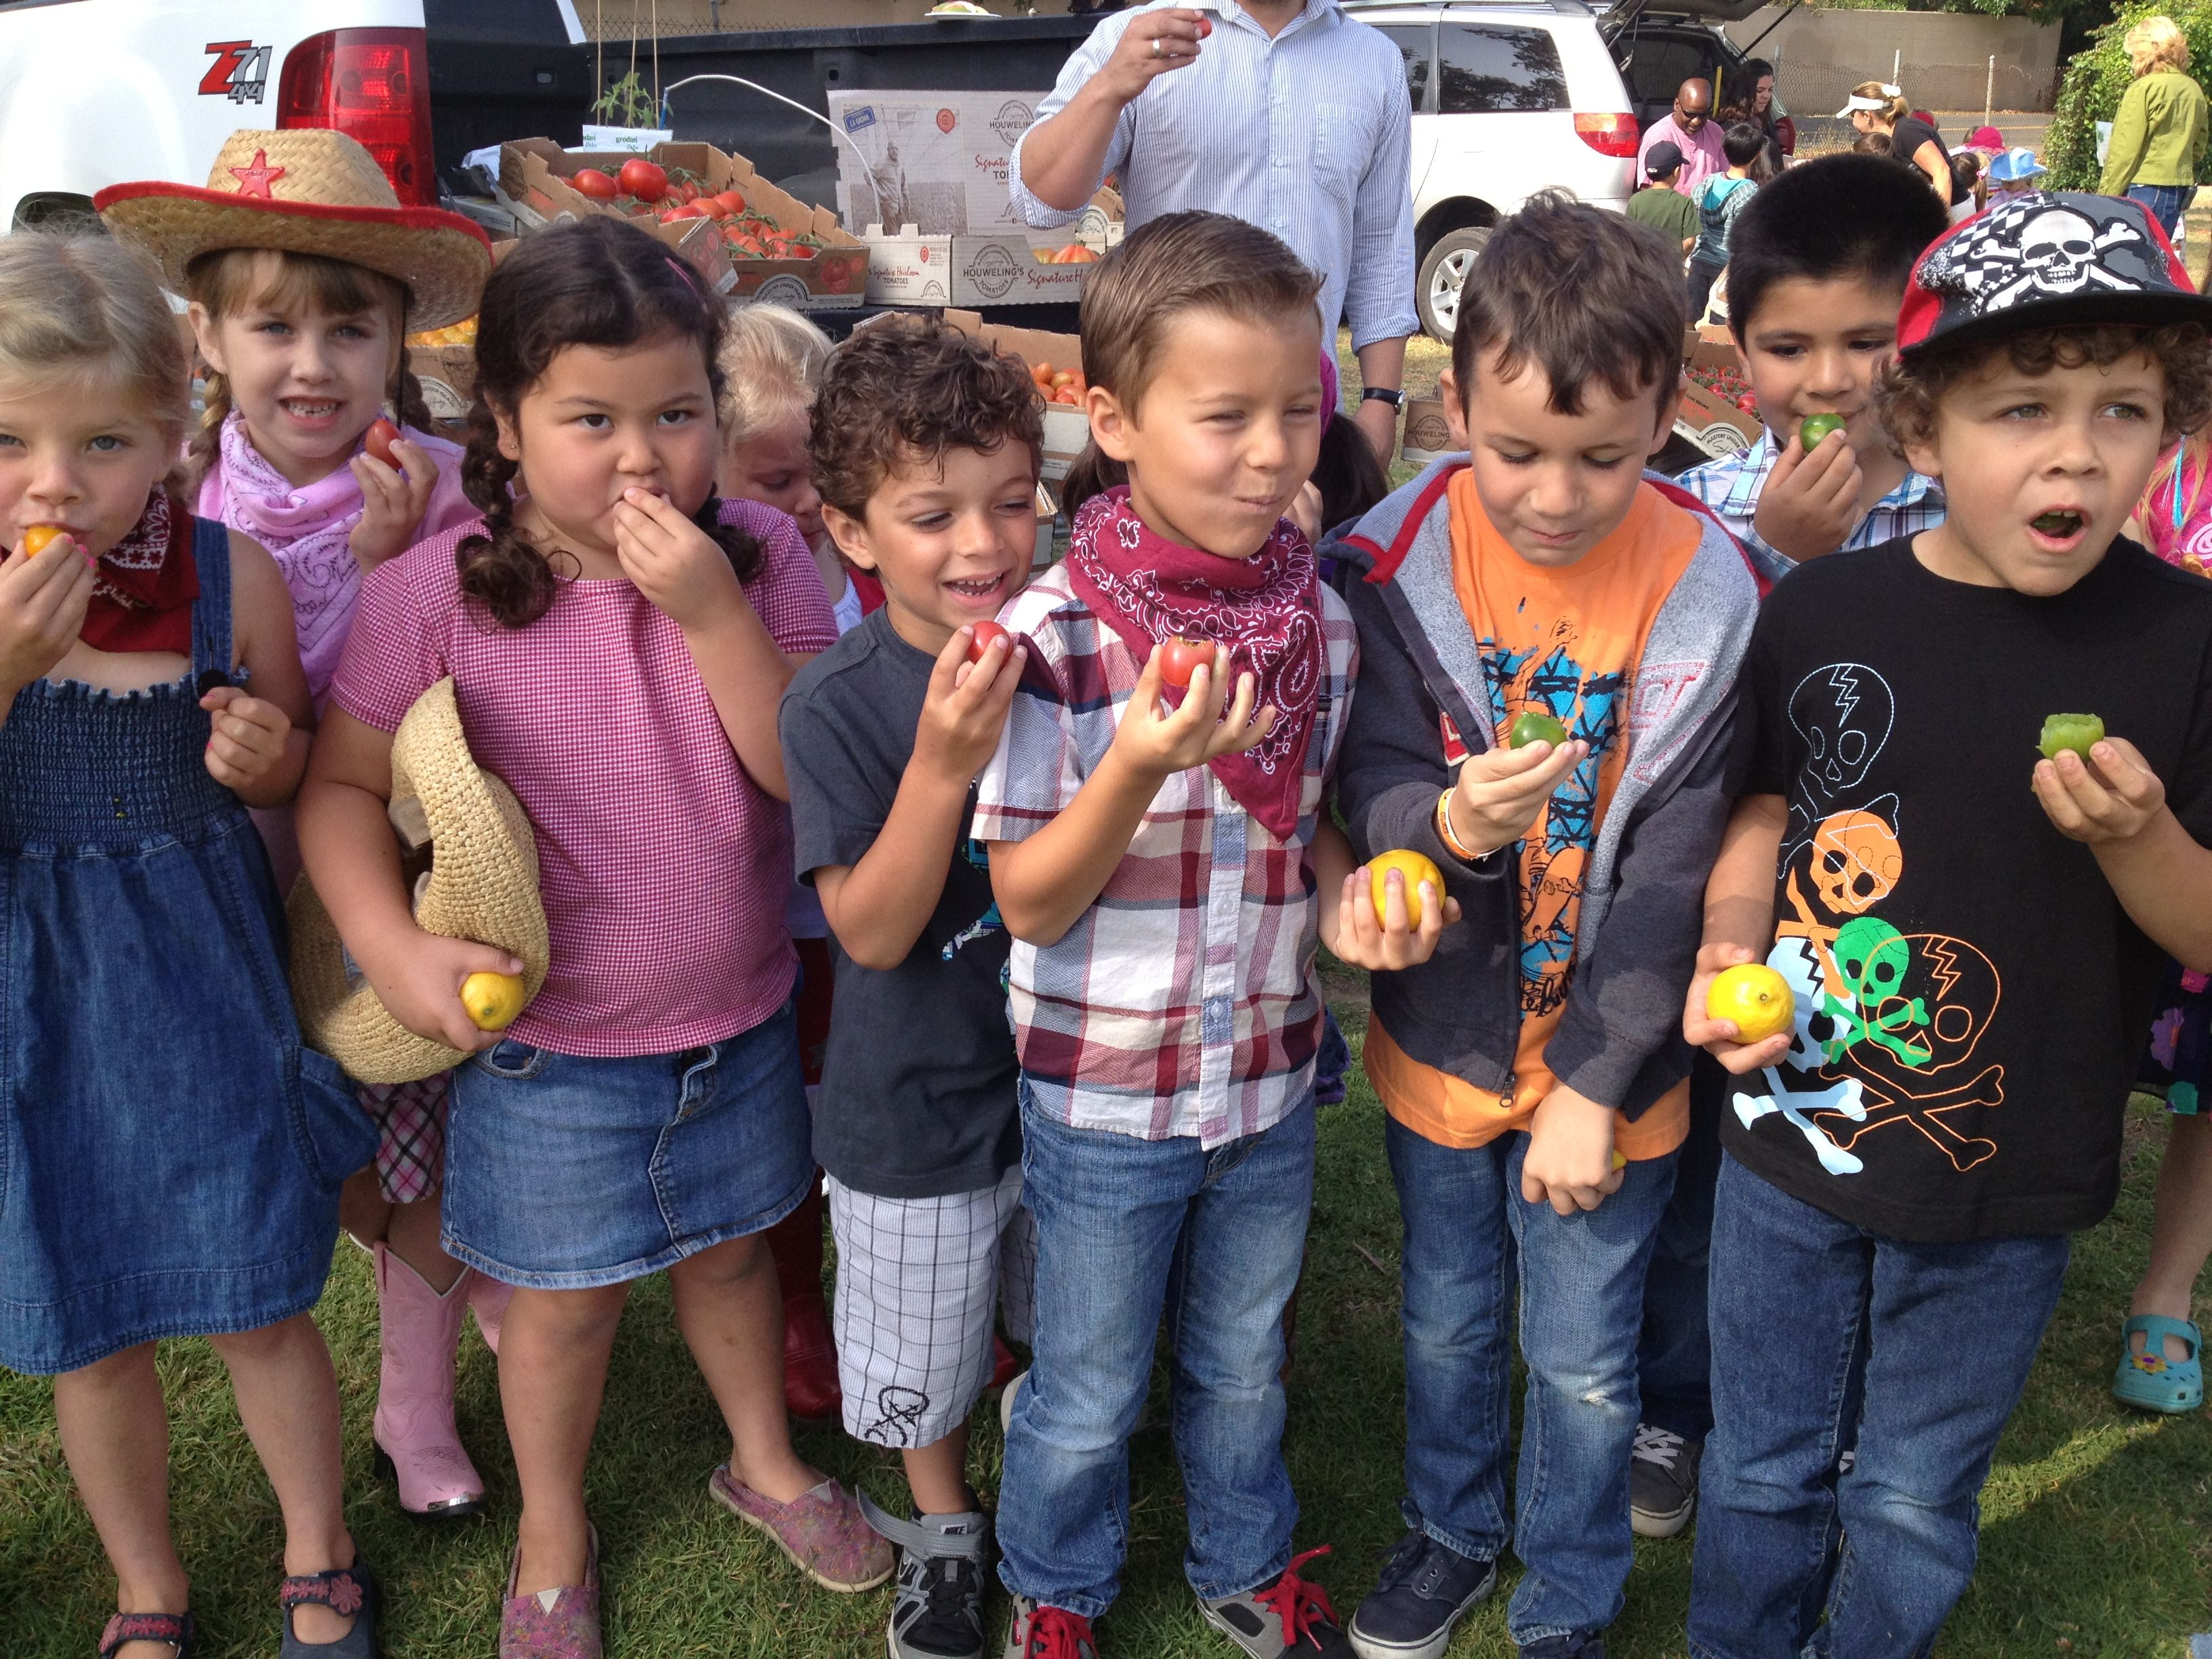 2013 Farm Day at Mound School. We could not believe how much they liked all the different colored tomatoes!